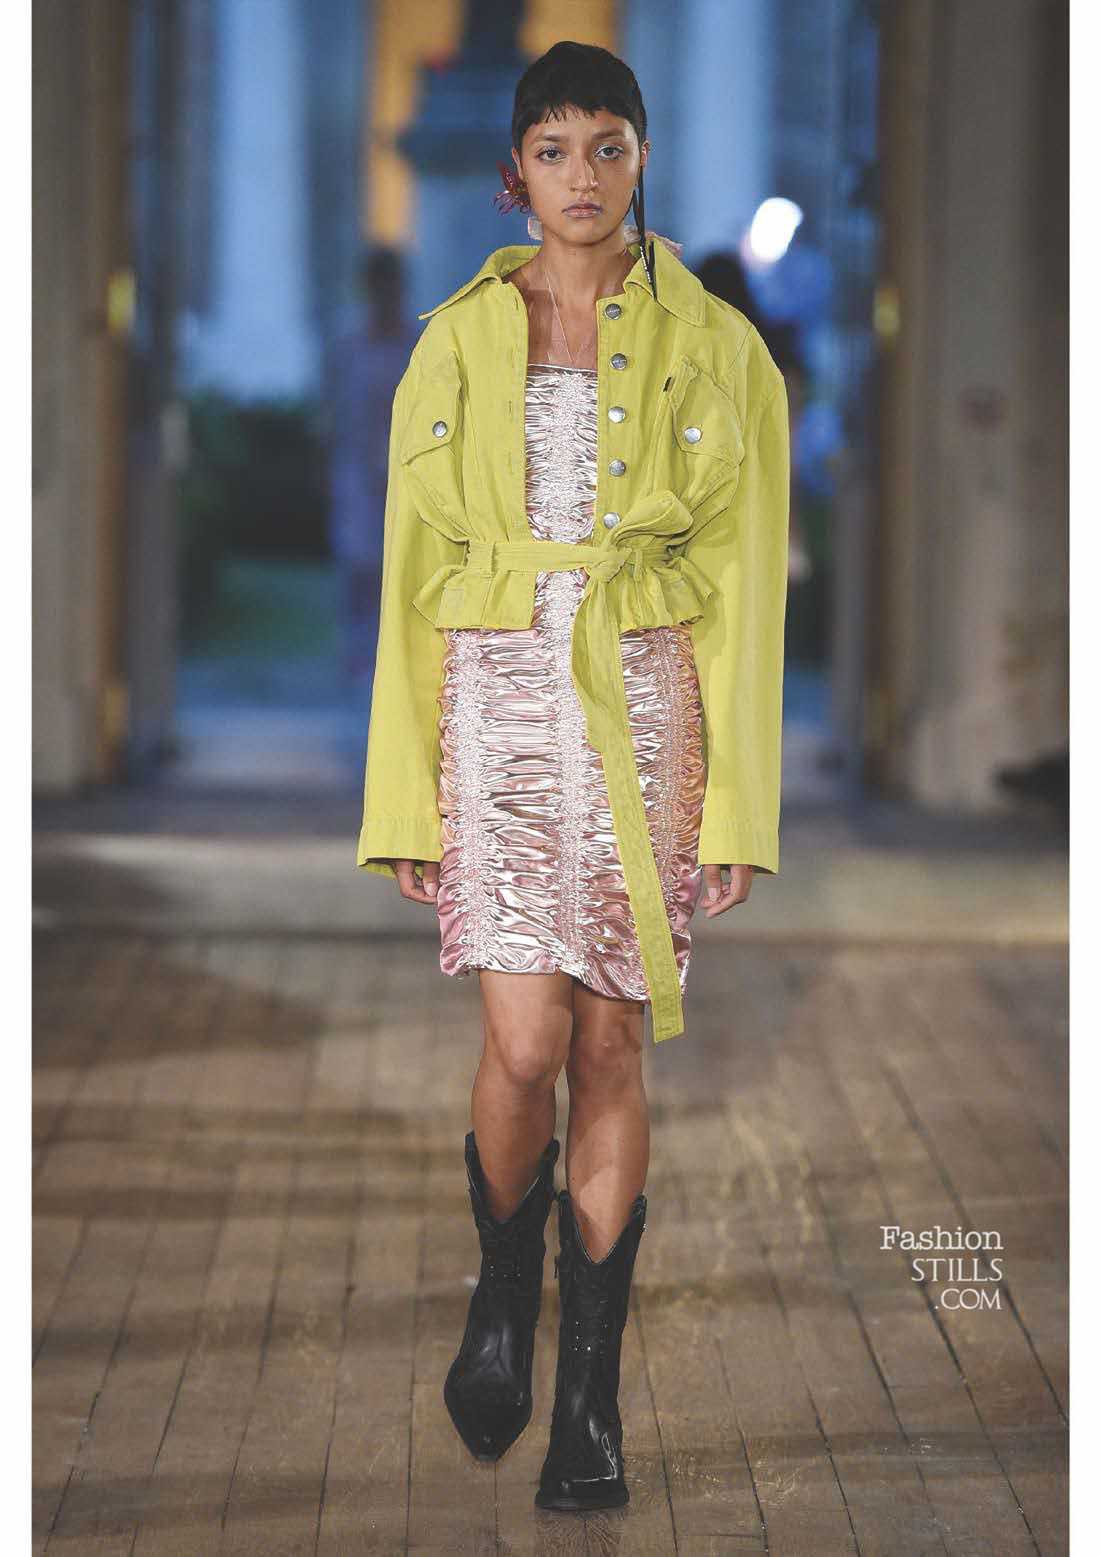 Neith Nyer_1513681565_39_look-book-_-press-release-ss18-neith-nyer-012.jpg